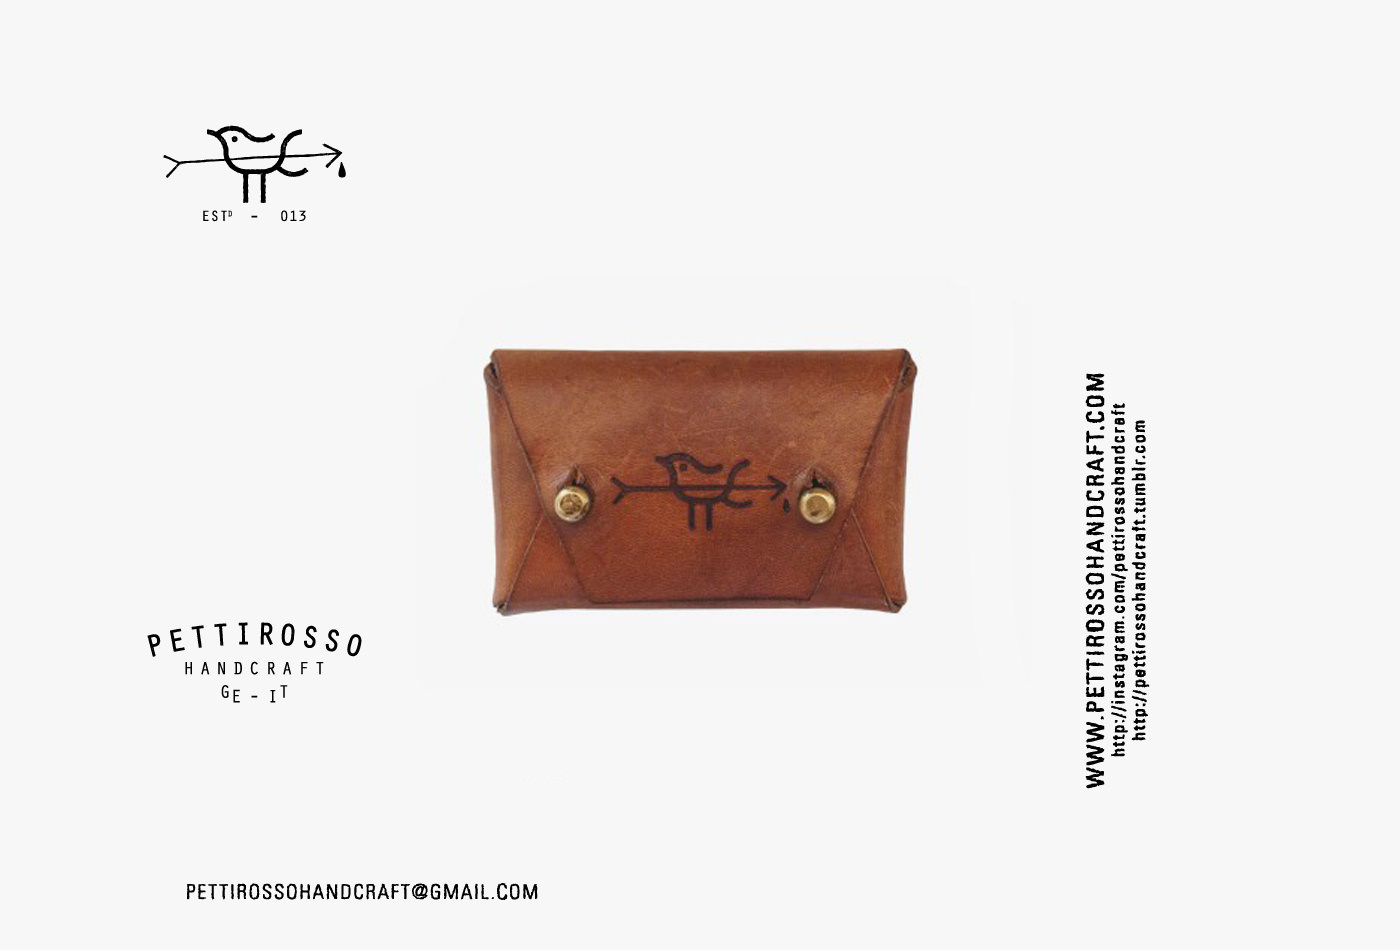 03-pettirosso-handcraft-leather-goods-wallet-vacaliebres